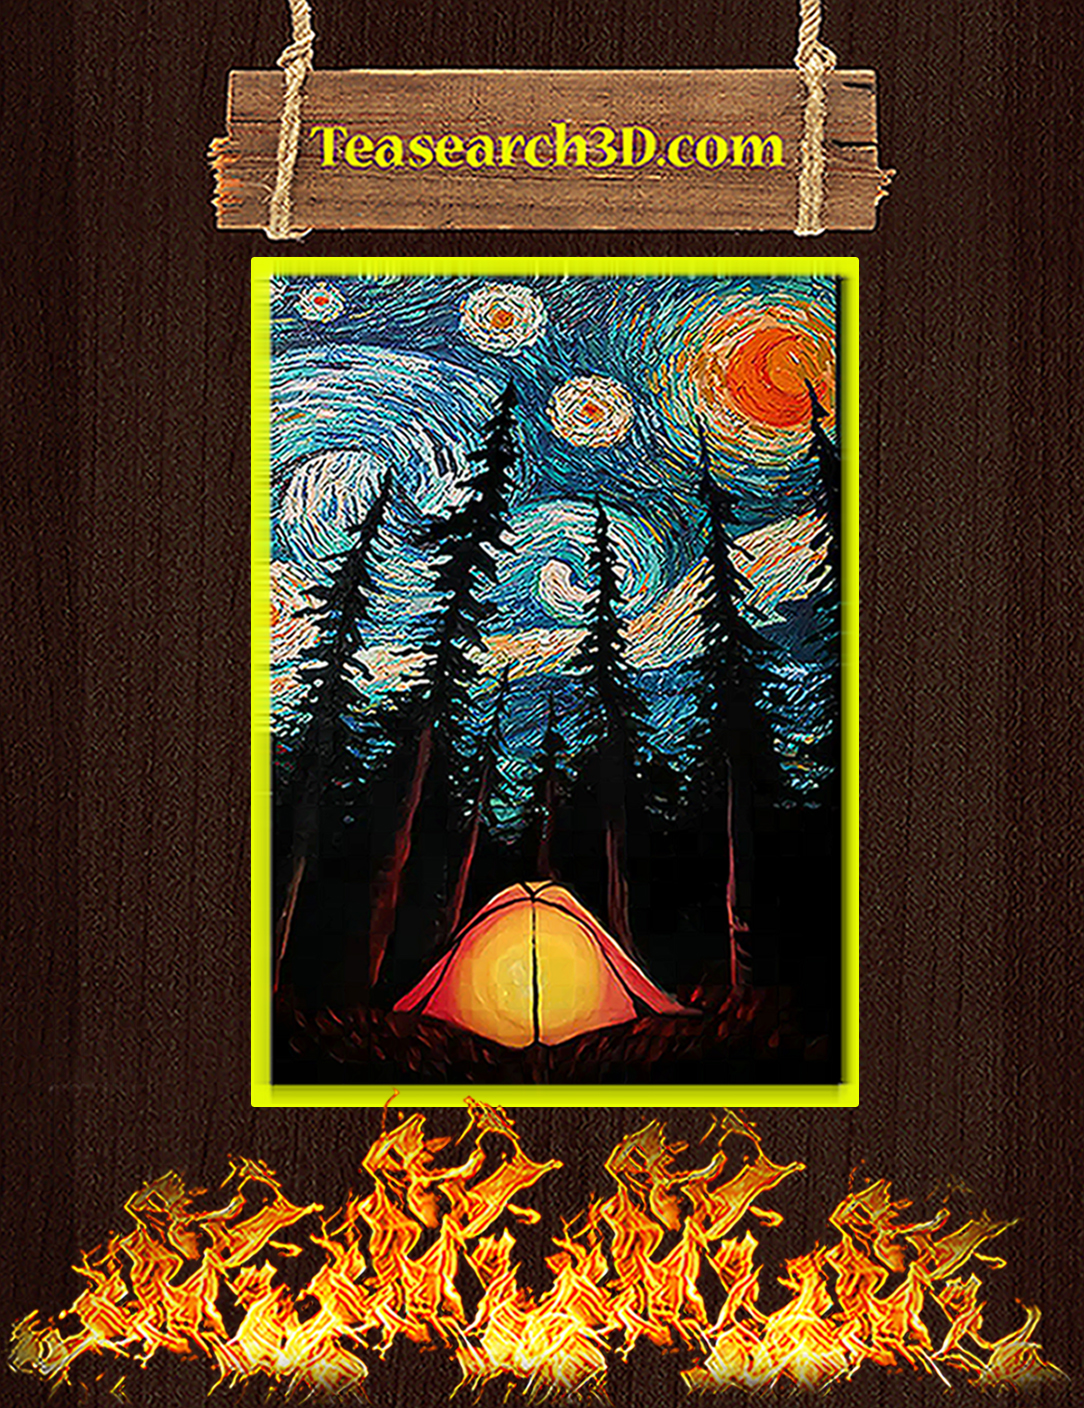 Camping starry night van gogh poster A2